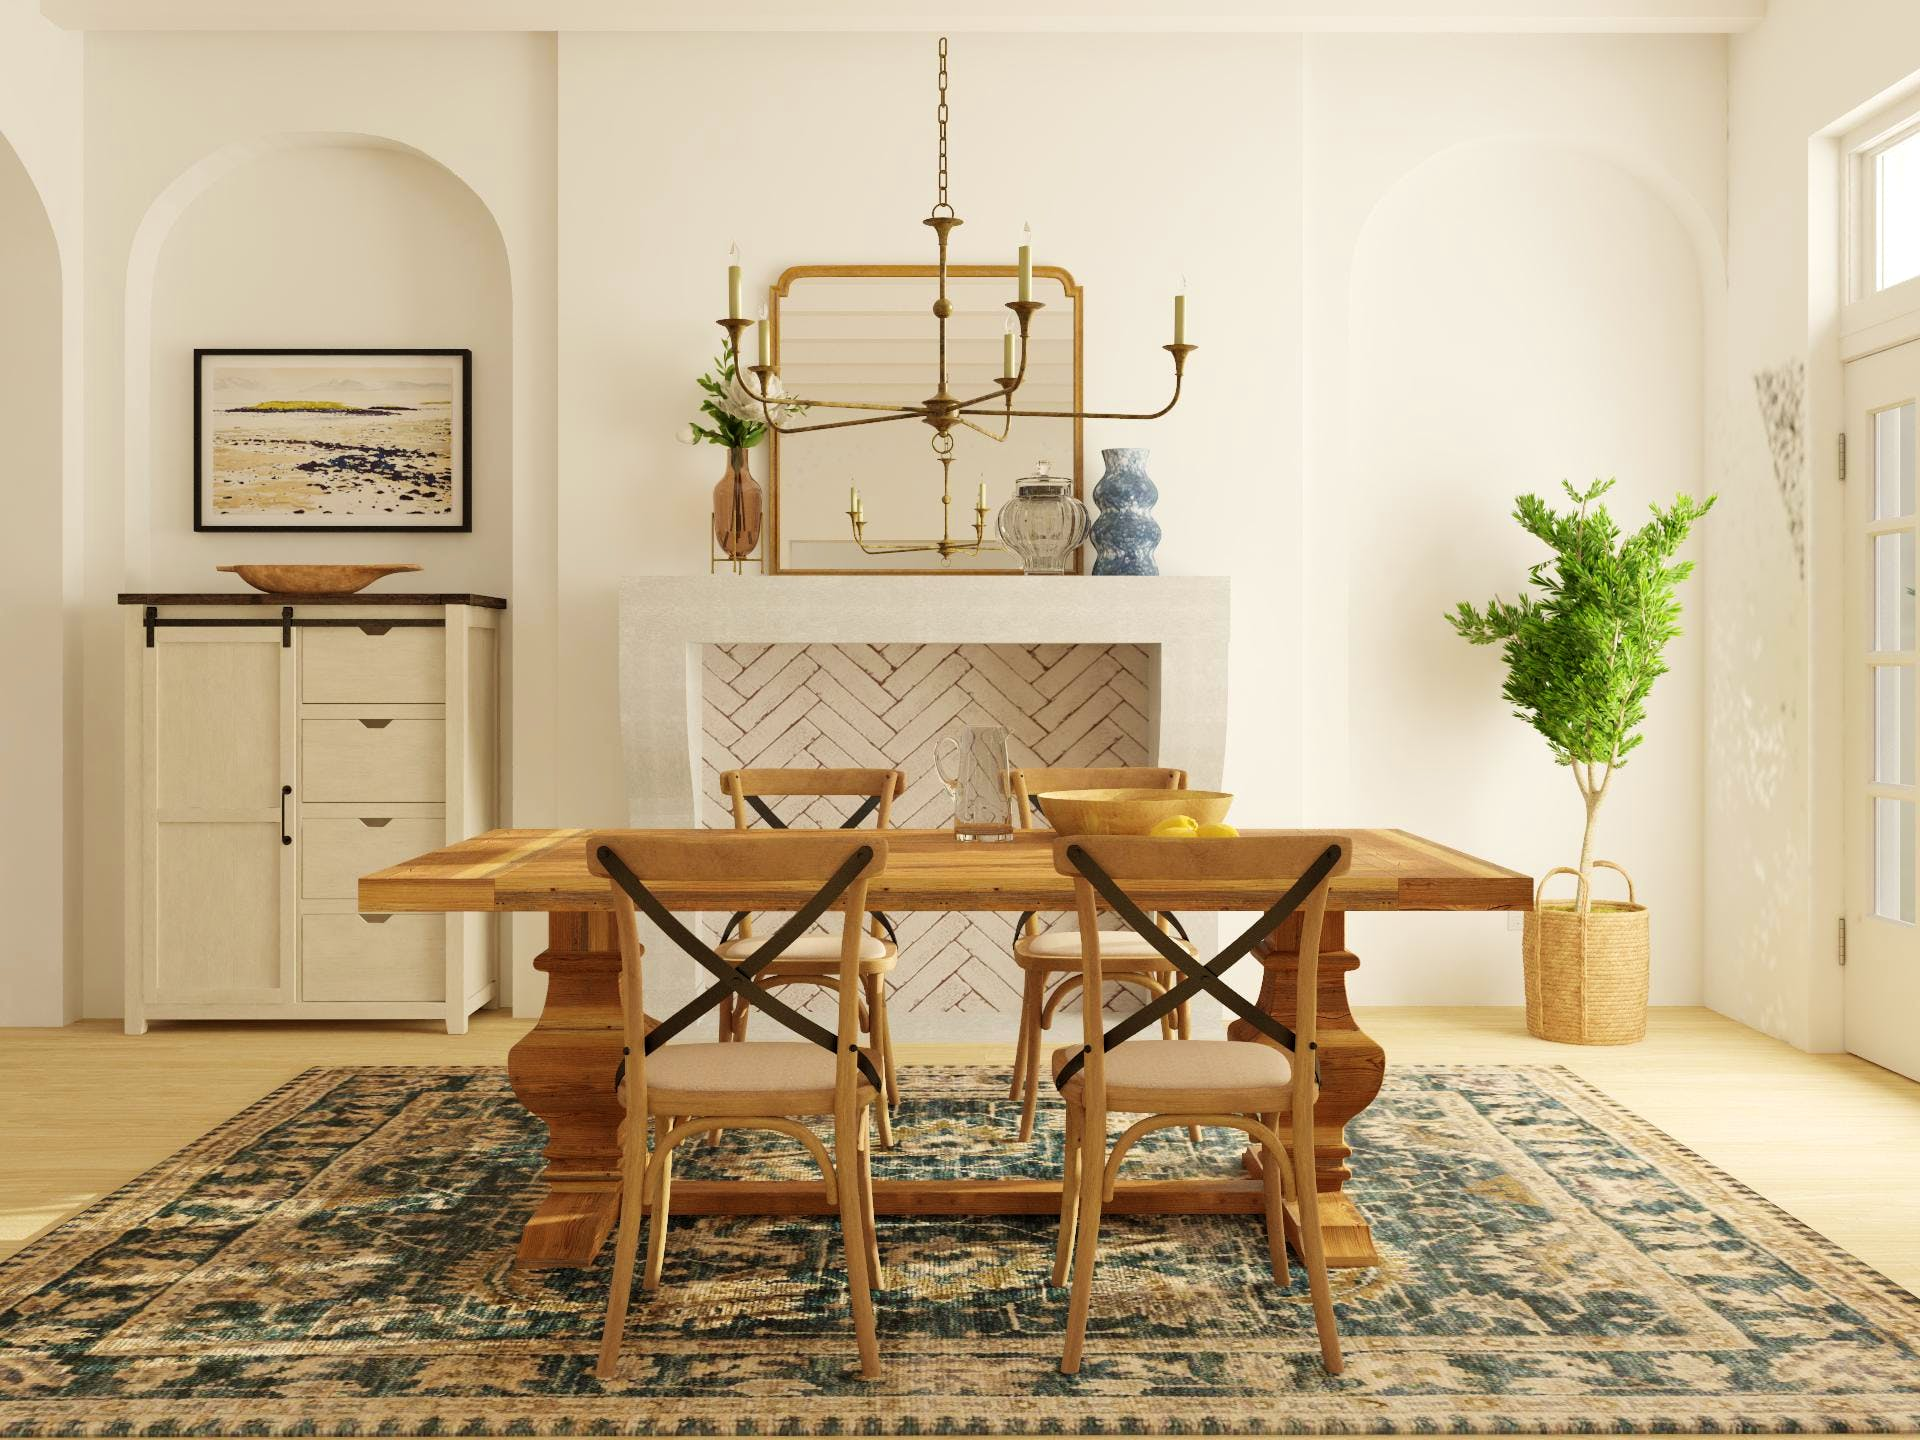 Traditional Dining Room: Warm and Cool in Perfect Balance